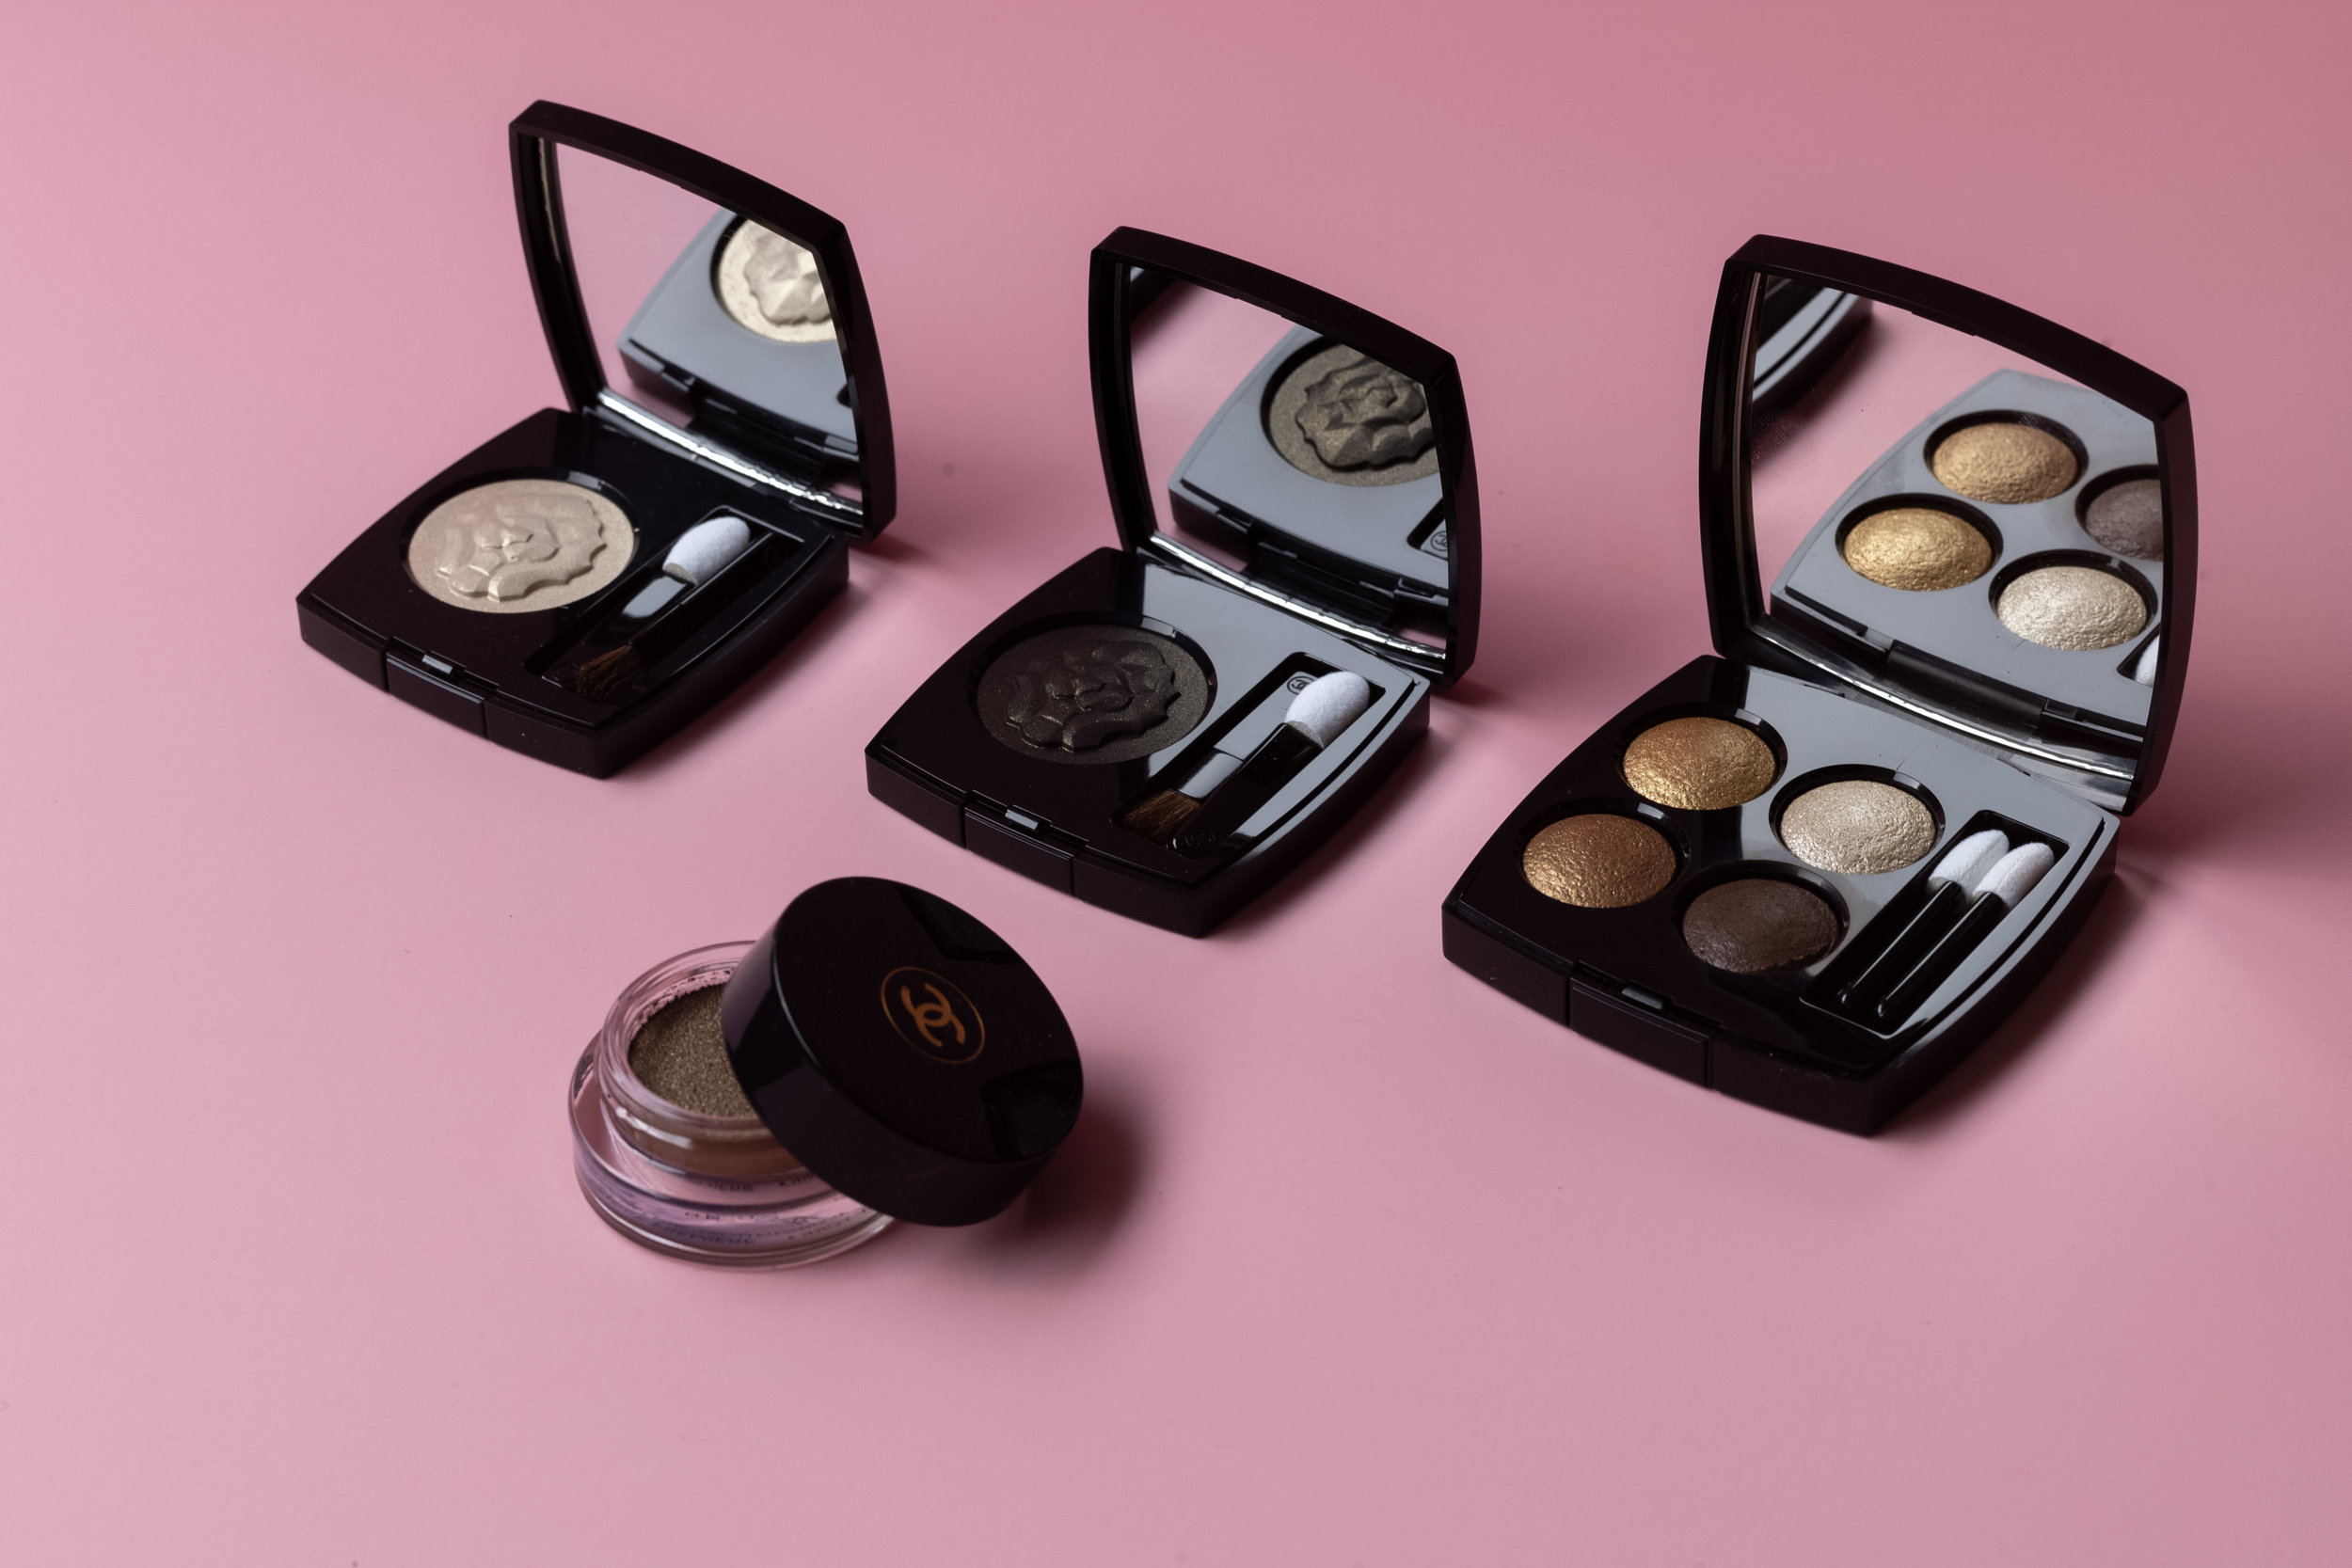 From left to right:     Ombre Première Longwear Powder Eyeshadow         in       Electrum Lame & Noir Lame,         Les 4 Ombres Multi-Effect Quadra Eyeshadow     in Condes Elegents,     Ombre Première Longwear Cream Eyeshadow     in Silver Pink